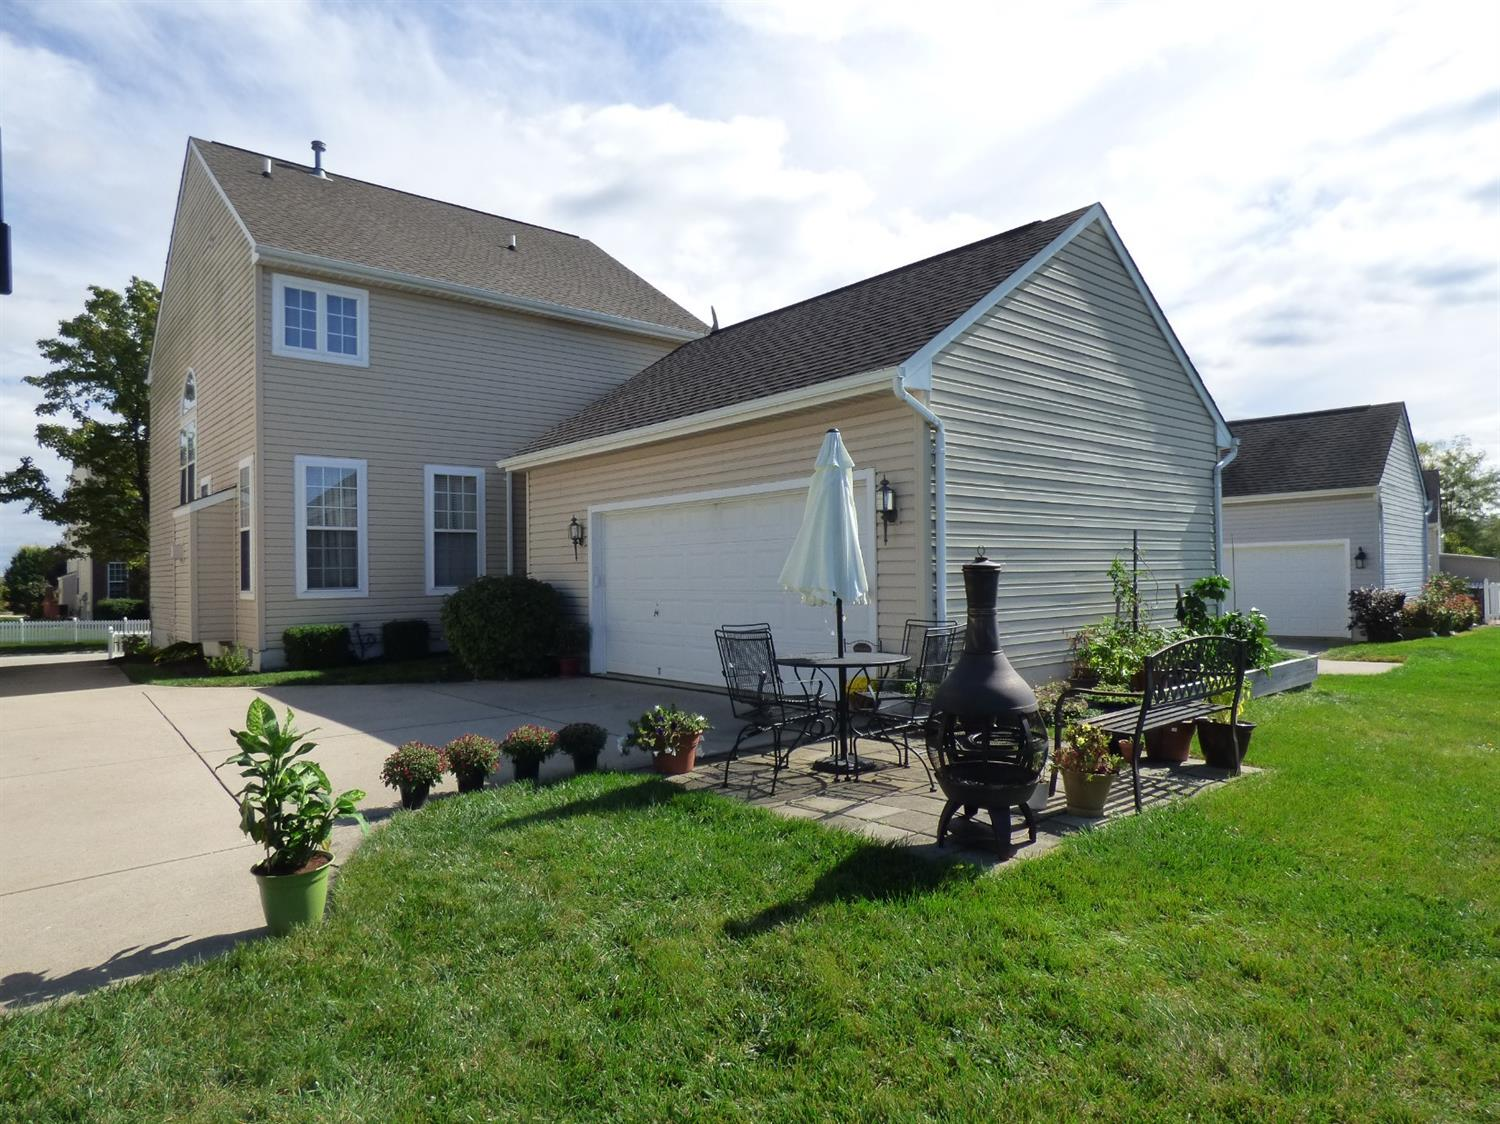 Property for sale at 1281 Weathervane Way, Lebanon,  OH 45036